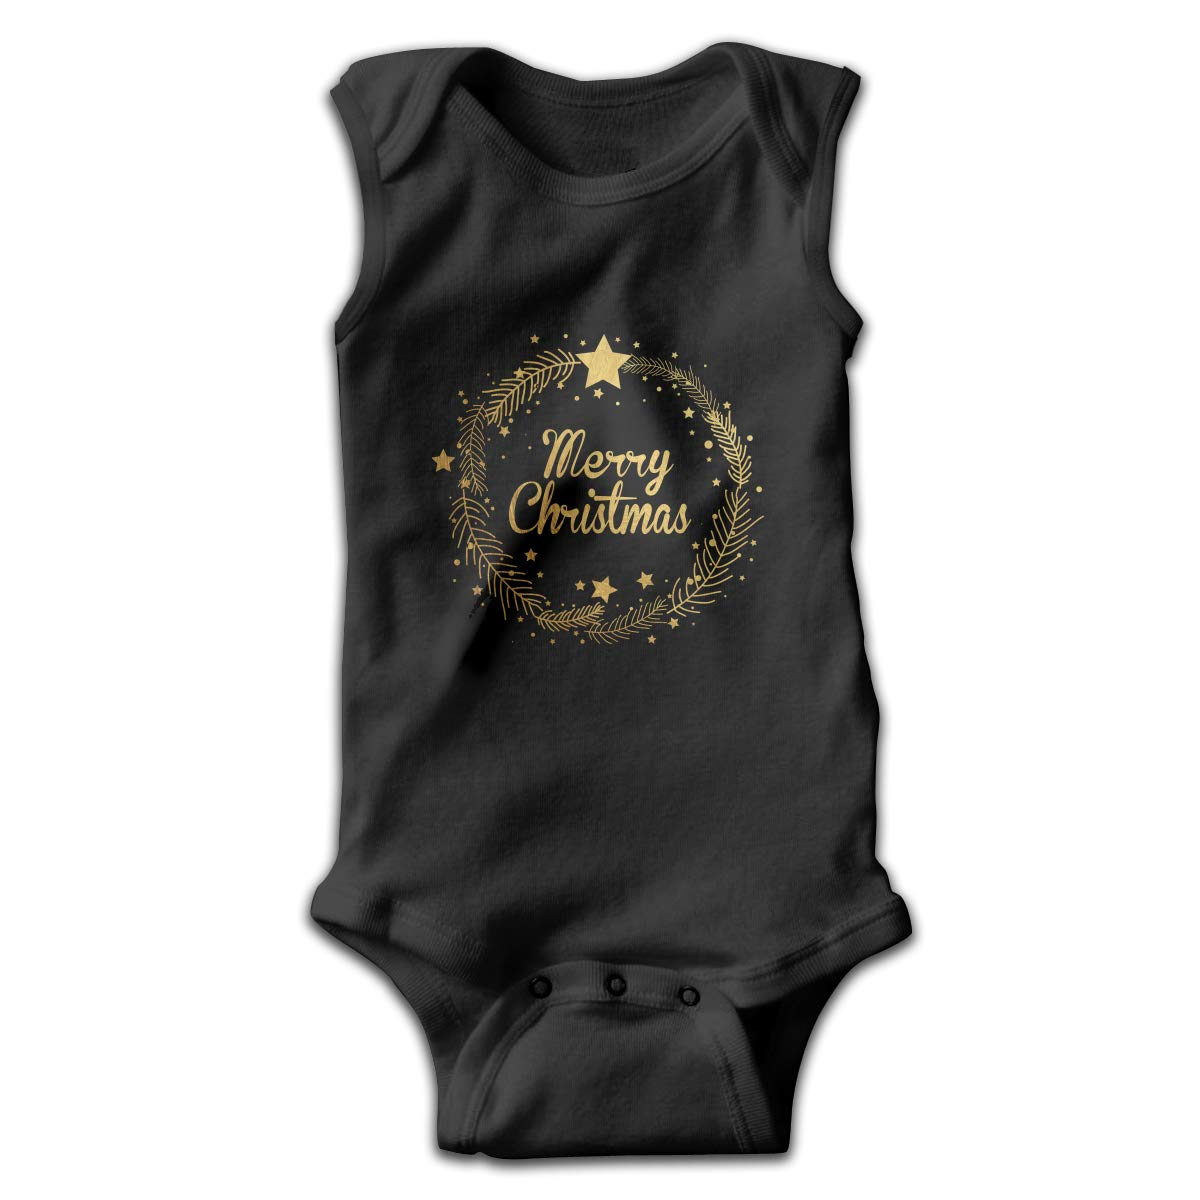 Infant Baby Boys Rompers Sleeveless Cotton Onesie,Merry Christmas Golden Wearth Bodysuit Spring Pajamas